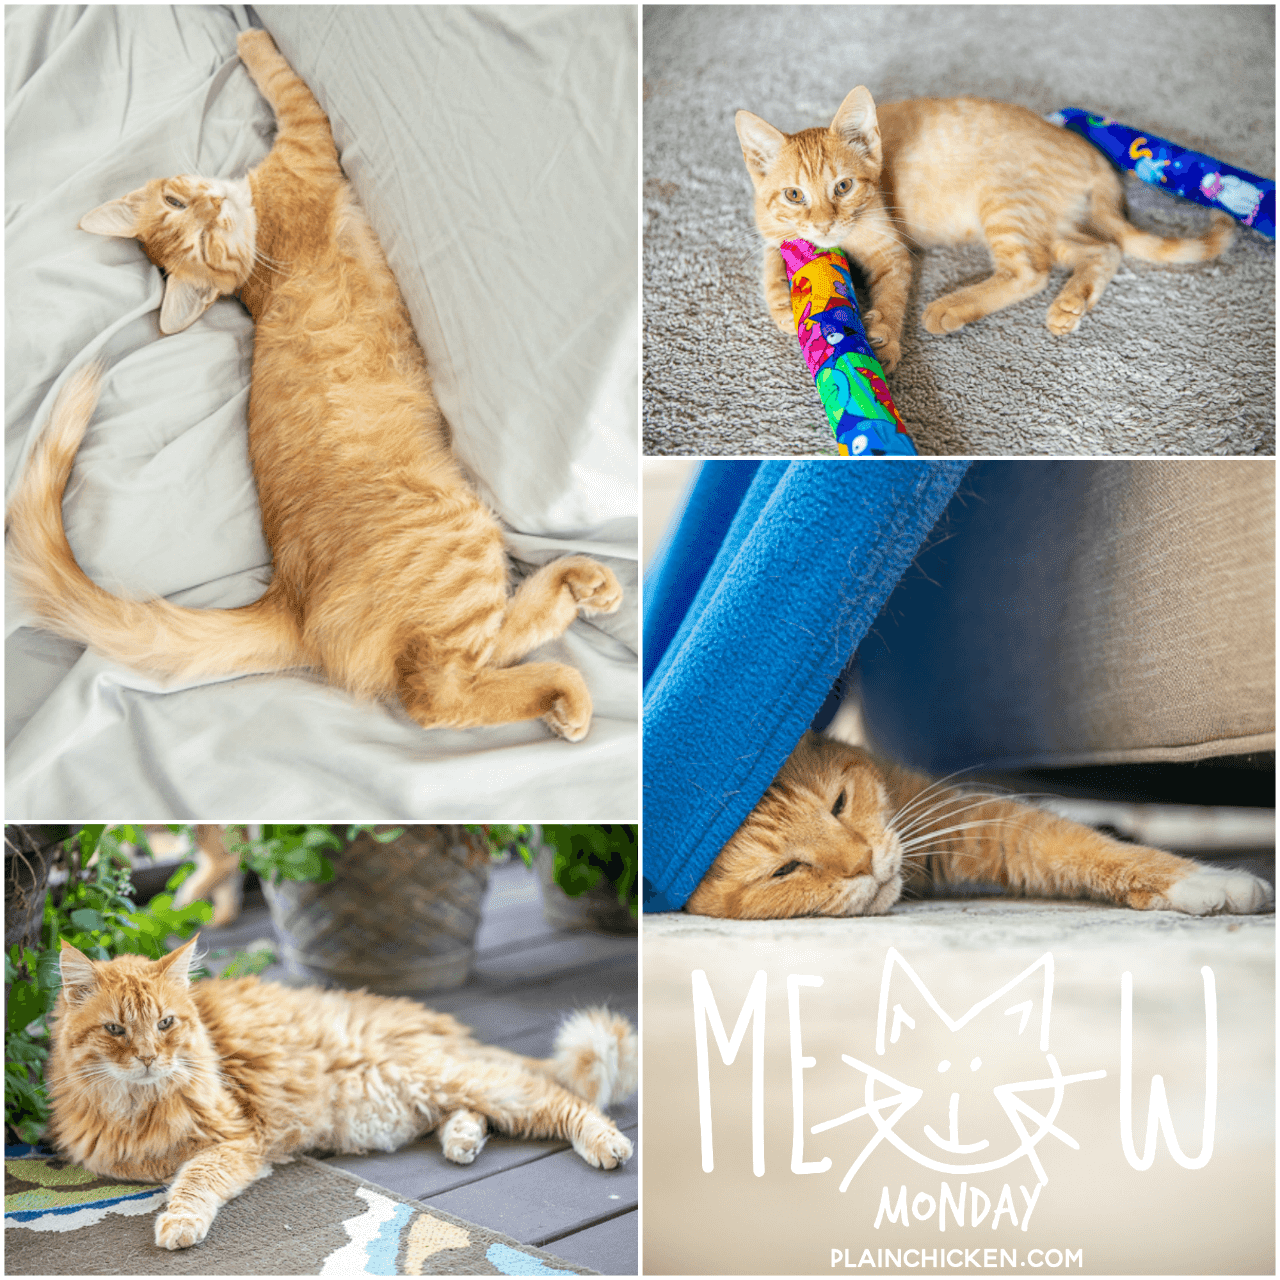 Meow Monday Pictures Of Cute Cats To Start The Week Come See What Jack Felix Mack And Mango Have Been Up To C Cute Cats Cat Pictures Videos Kitten Love